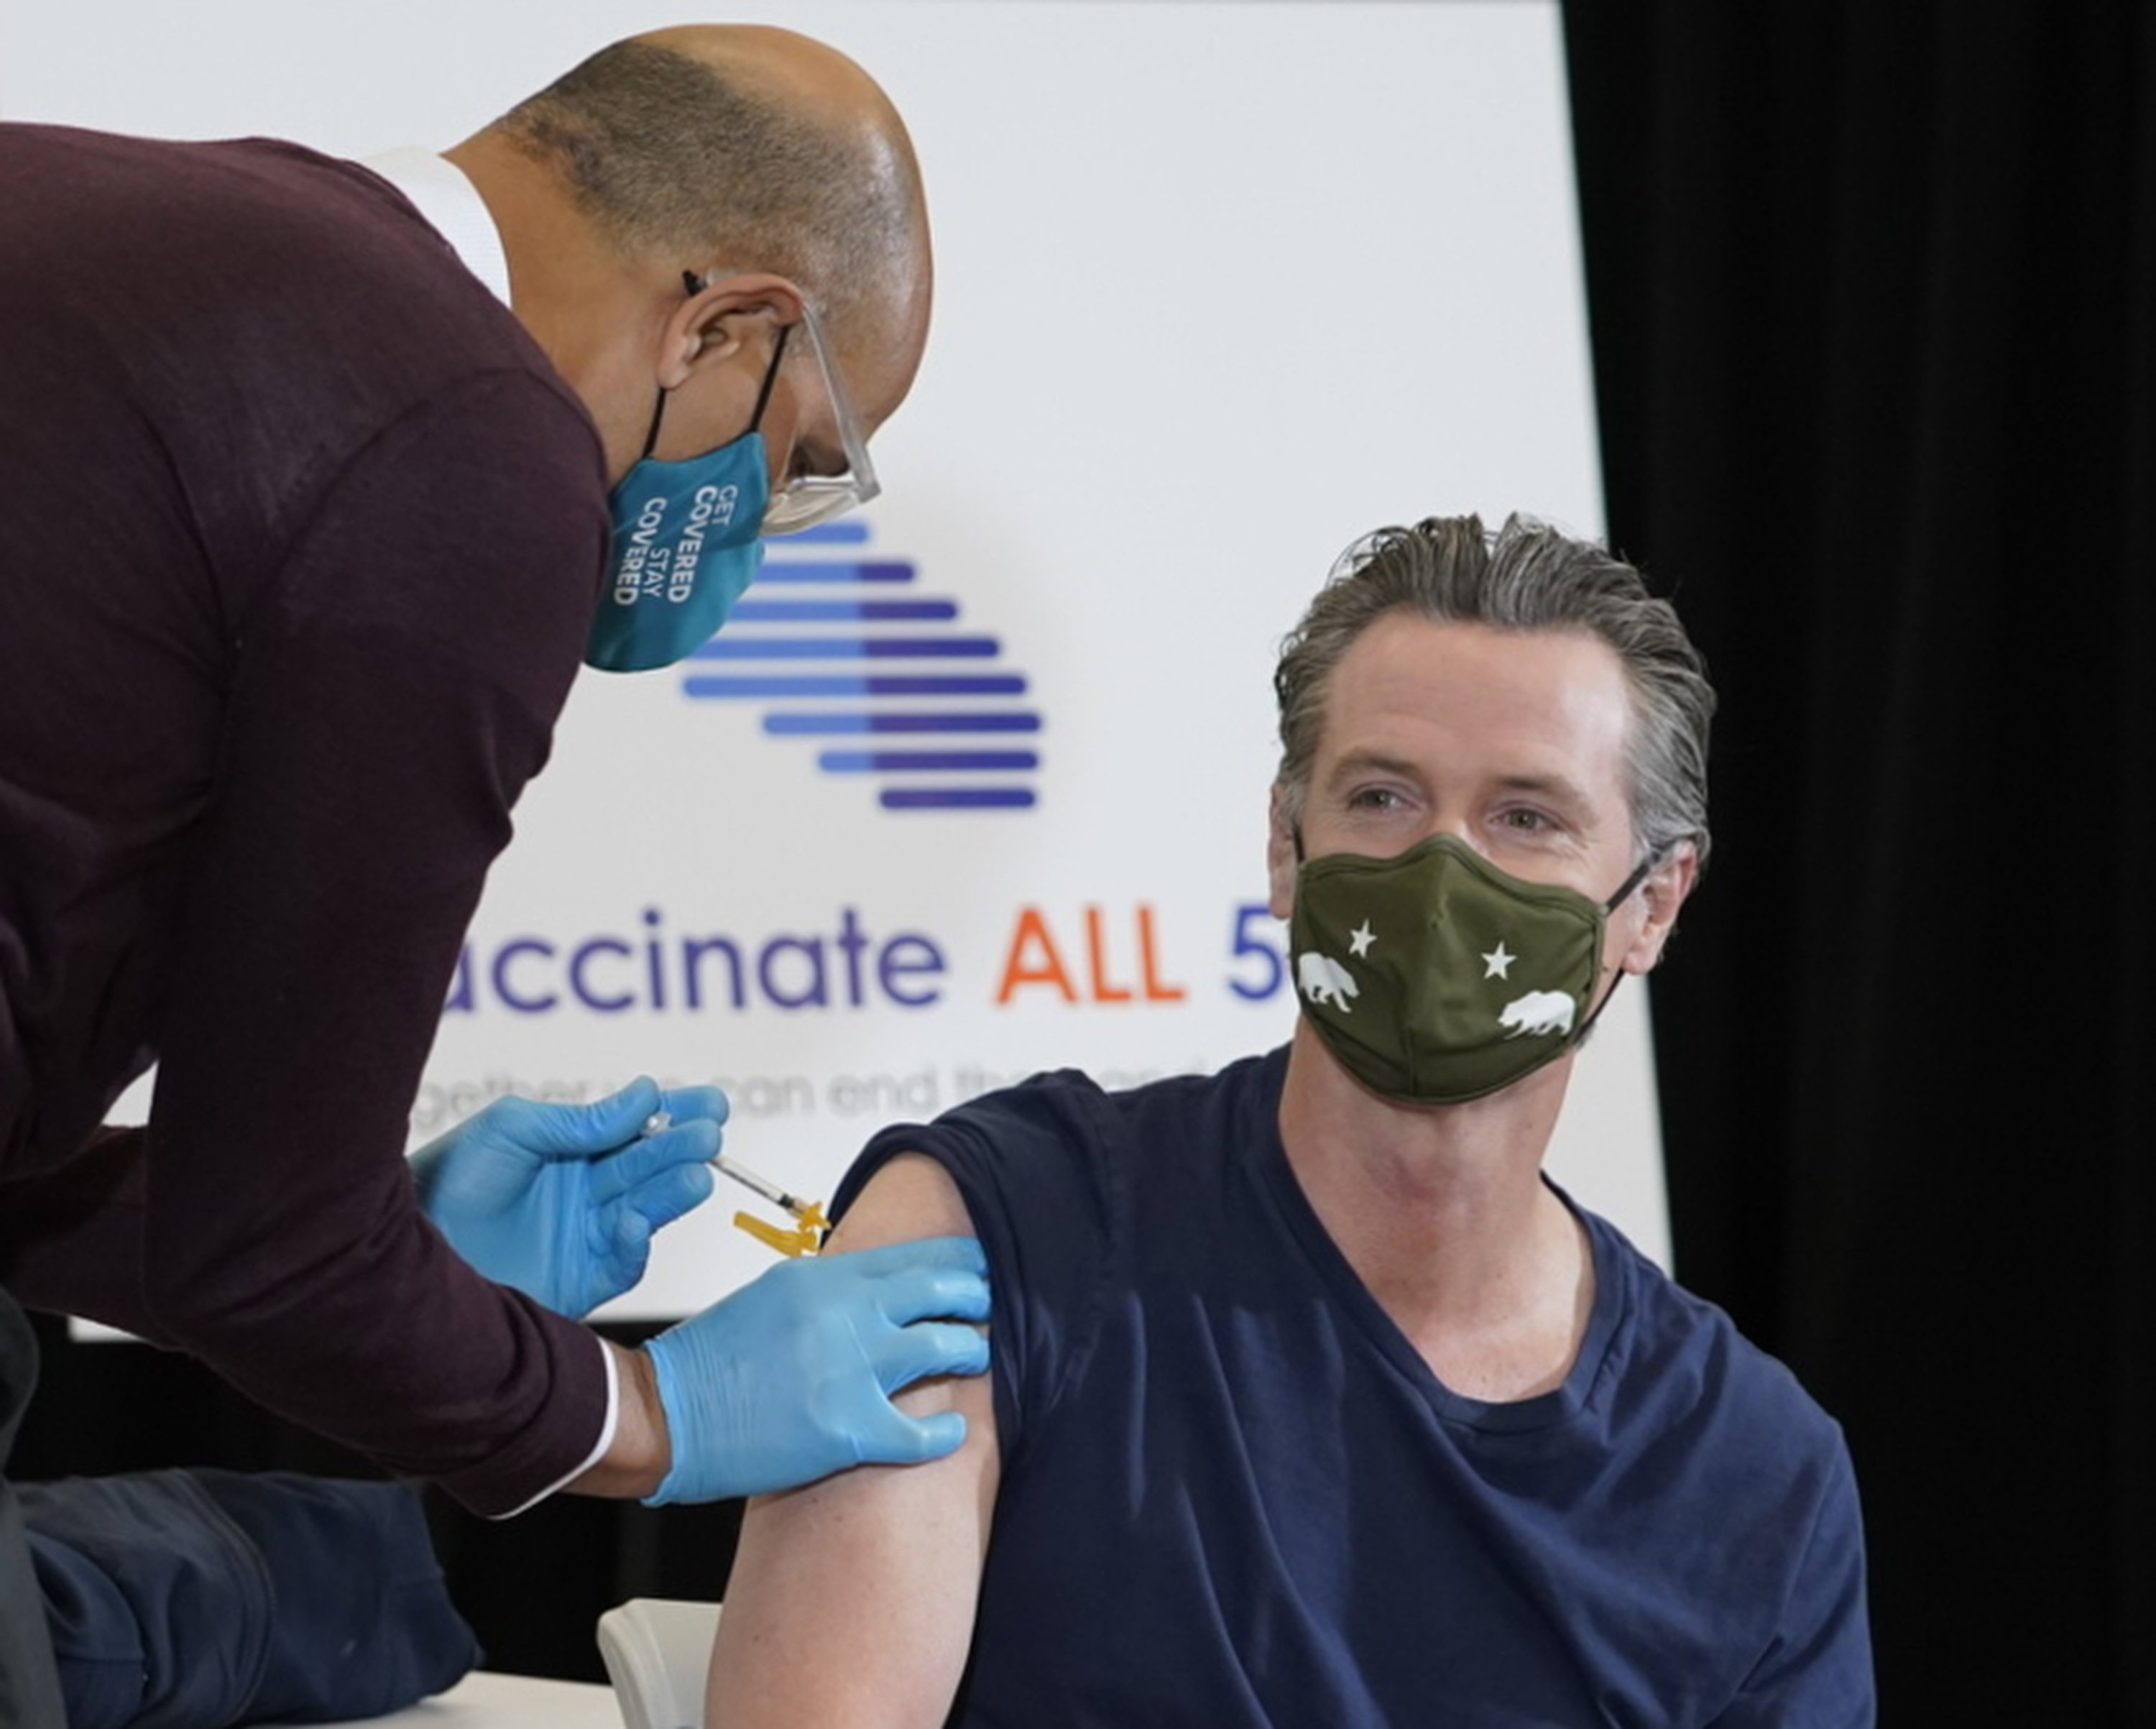 apnews.com: The Latest: Vermont expects to expand vaccine eligibility